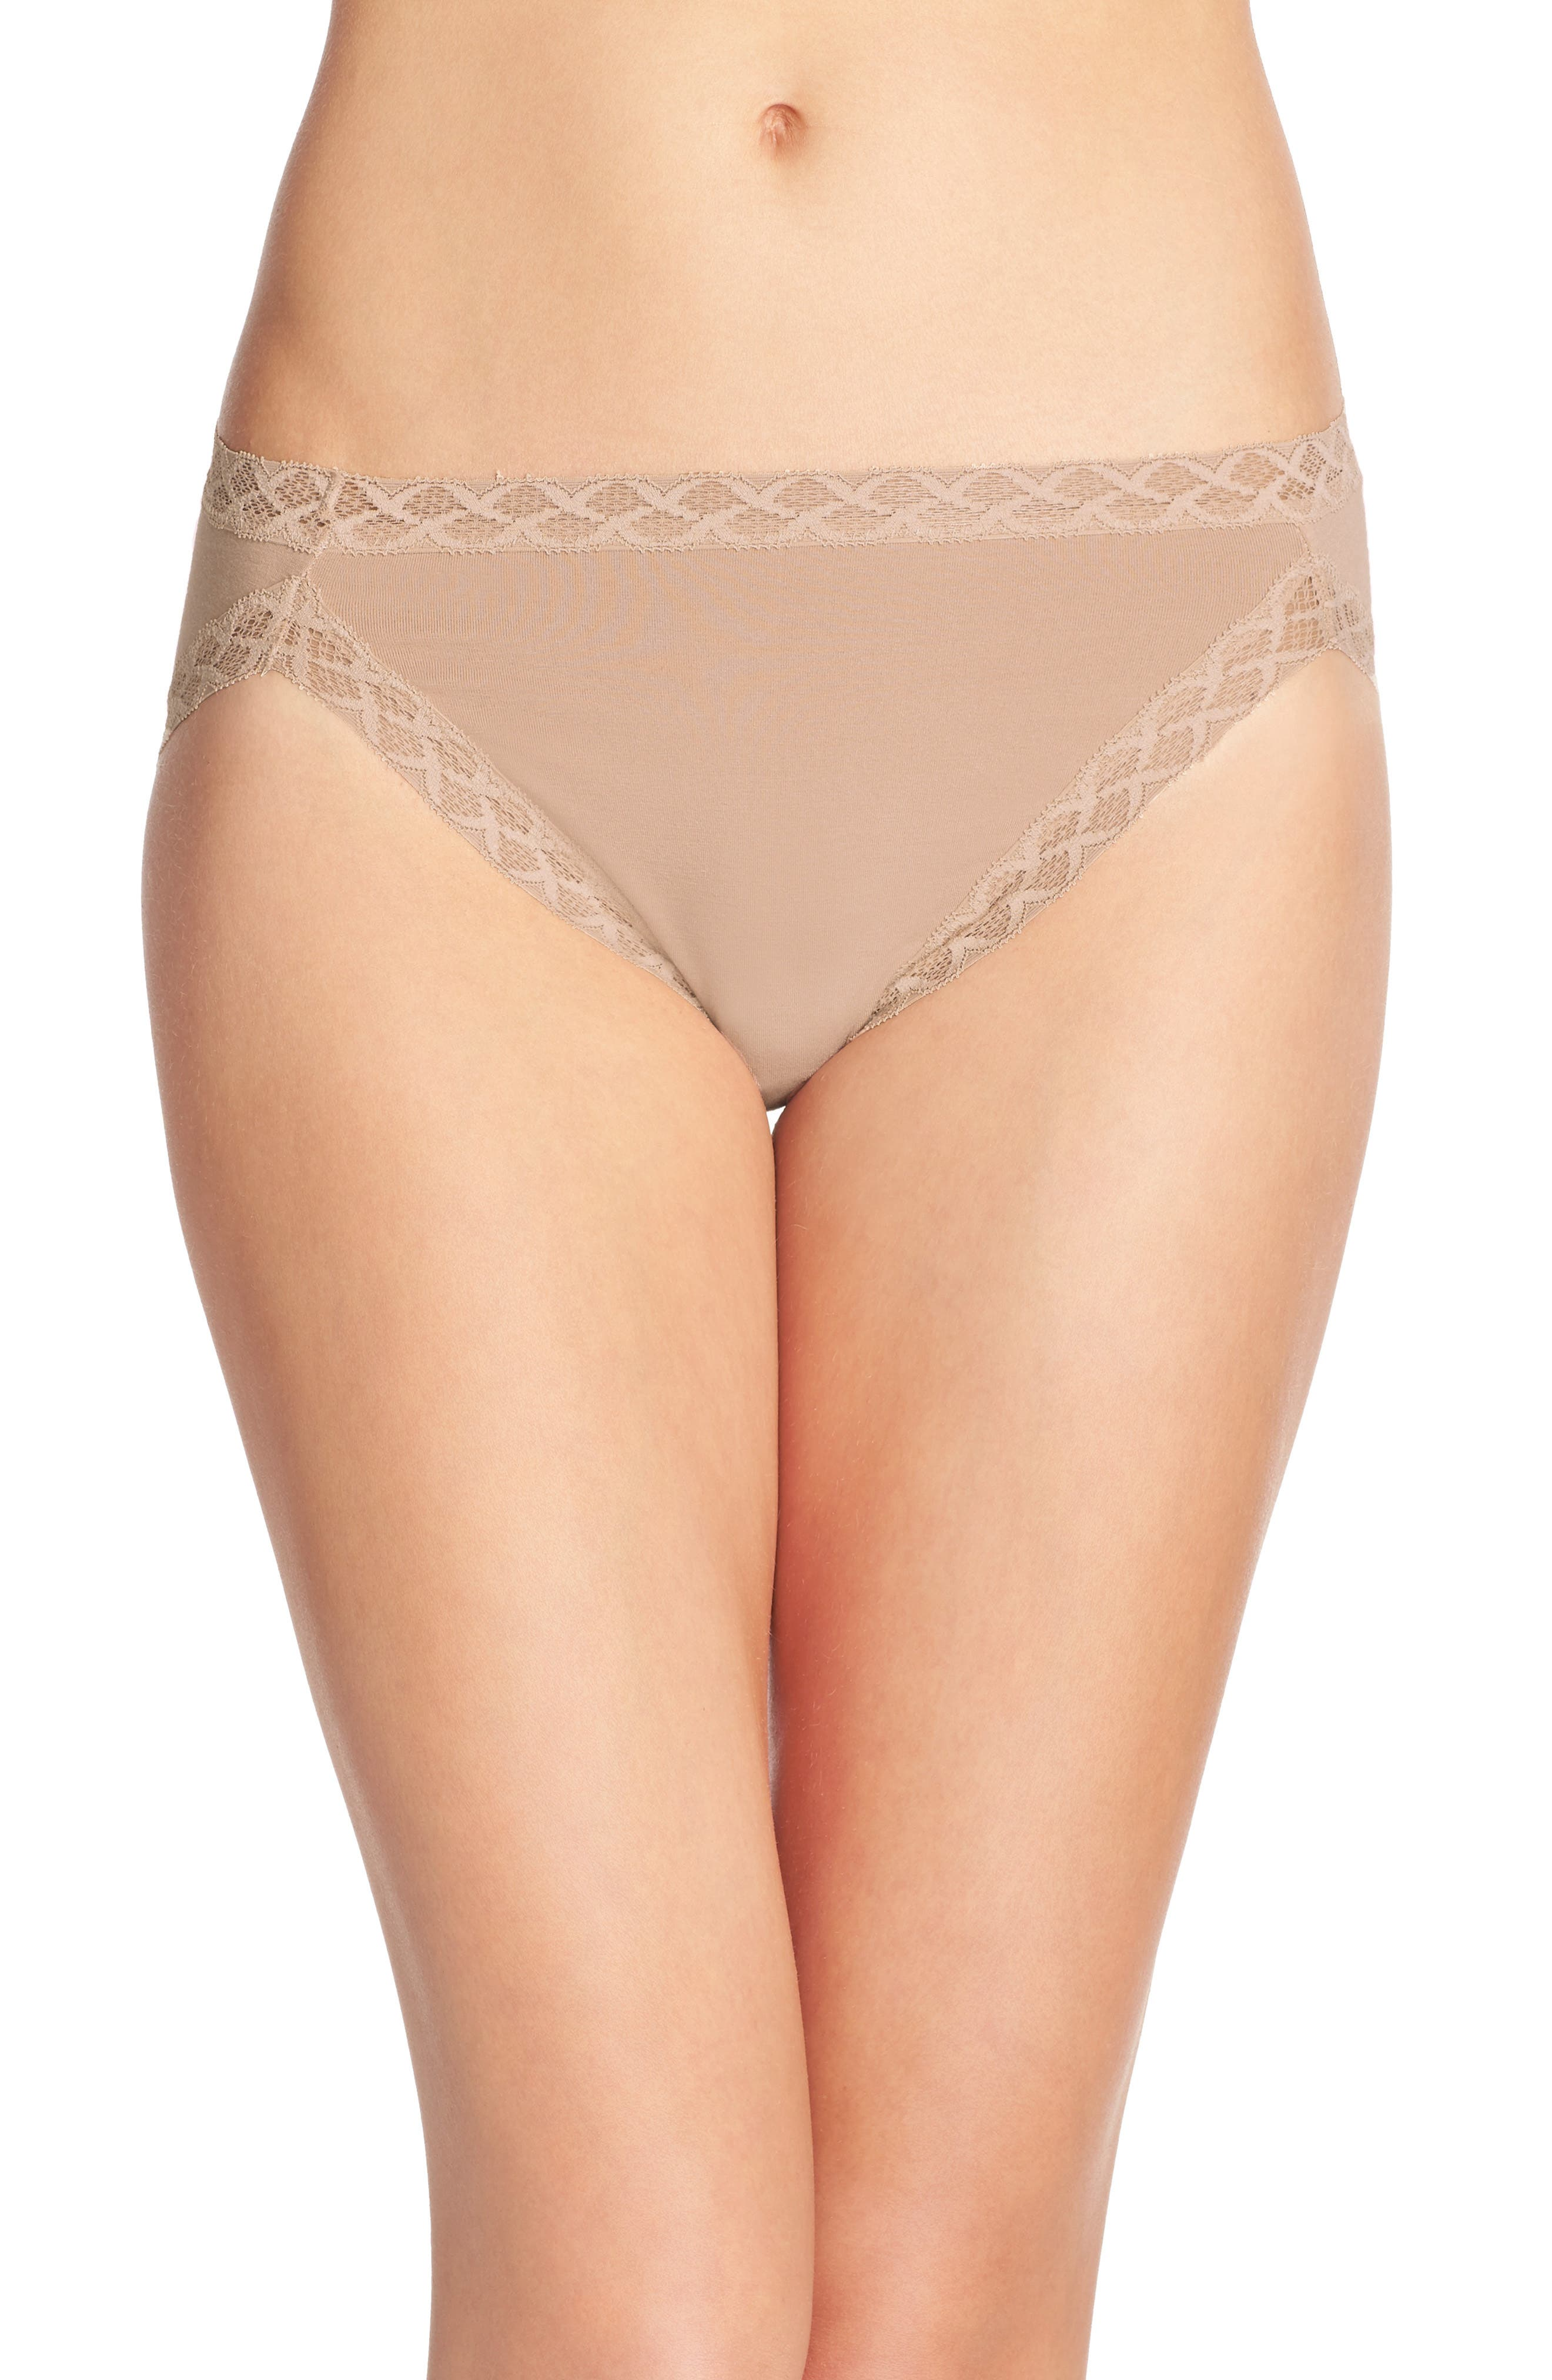 Bliss French Cut Briefs,                         Main,                         color, Cafe